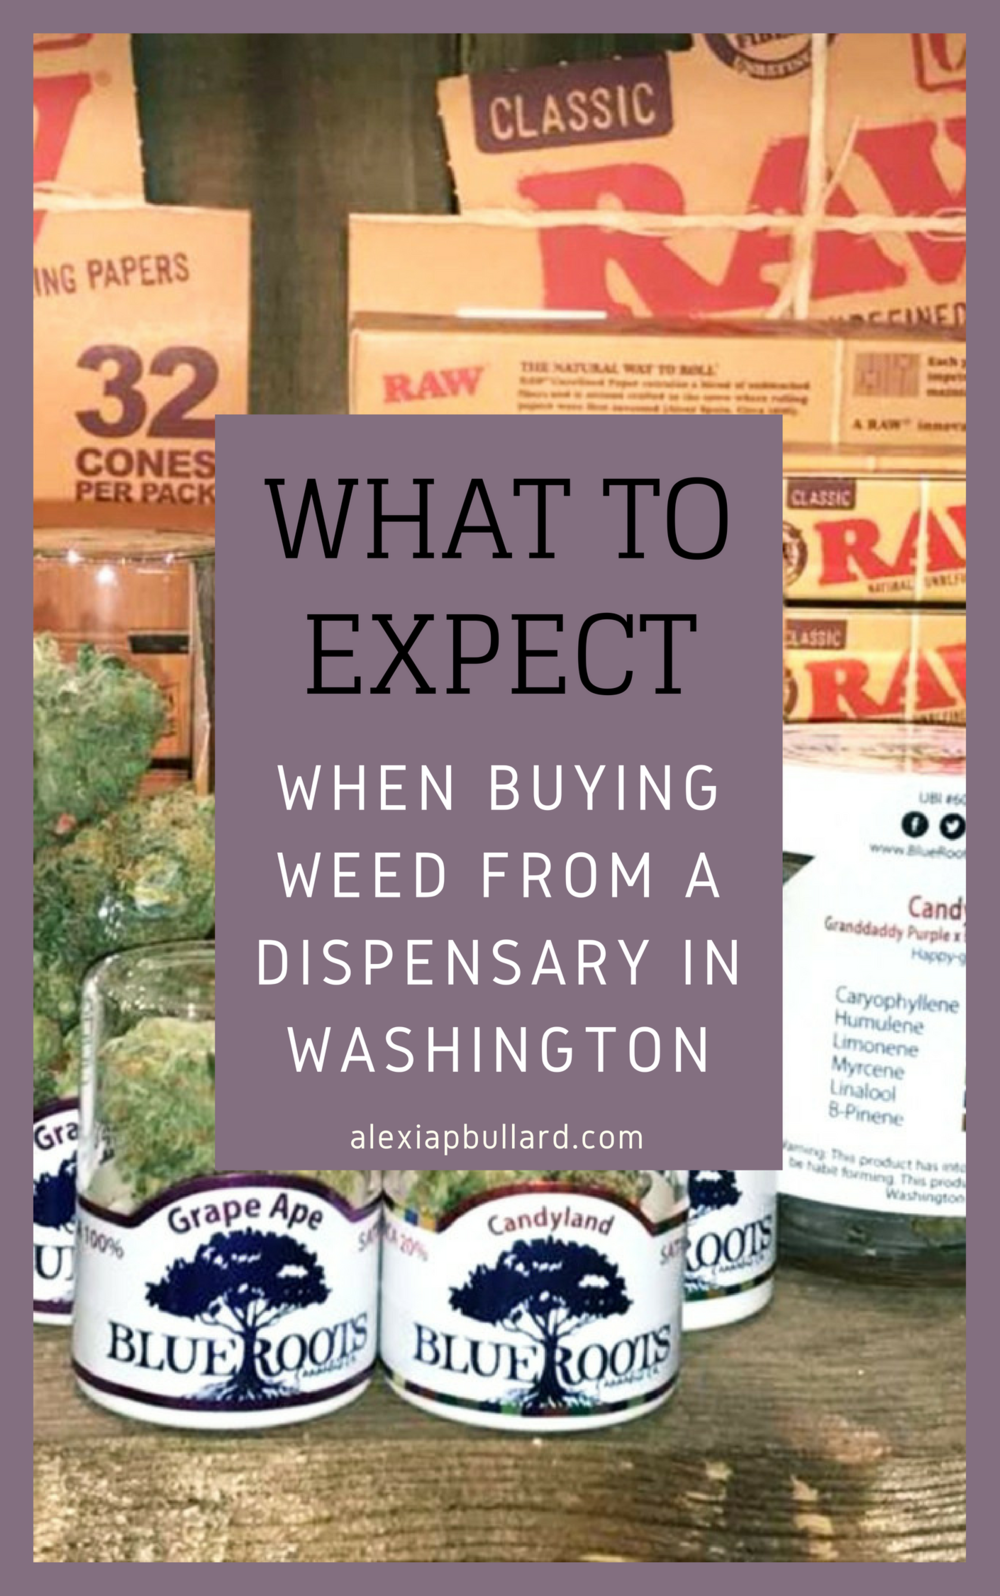 How to buy weed from a dispensary in Washington || Booklexia Content Marketing